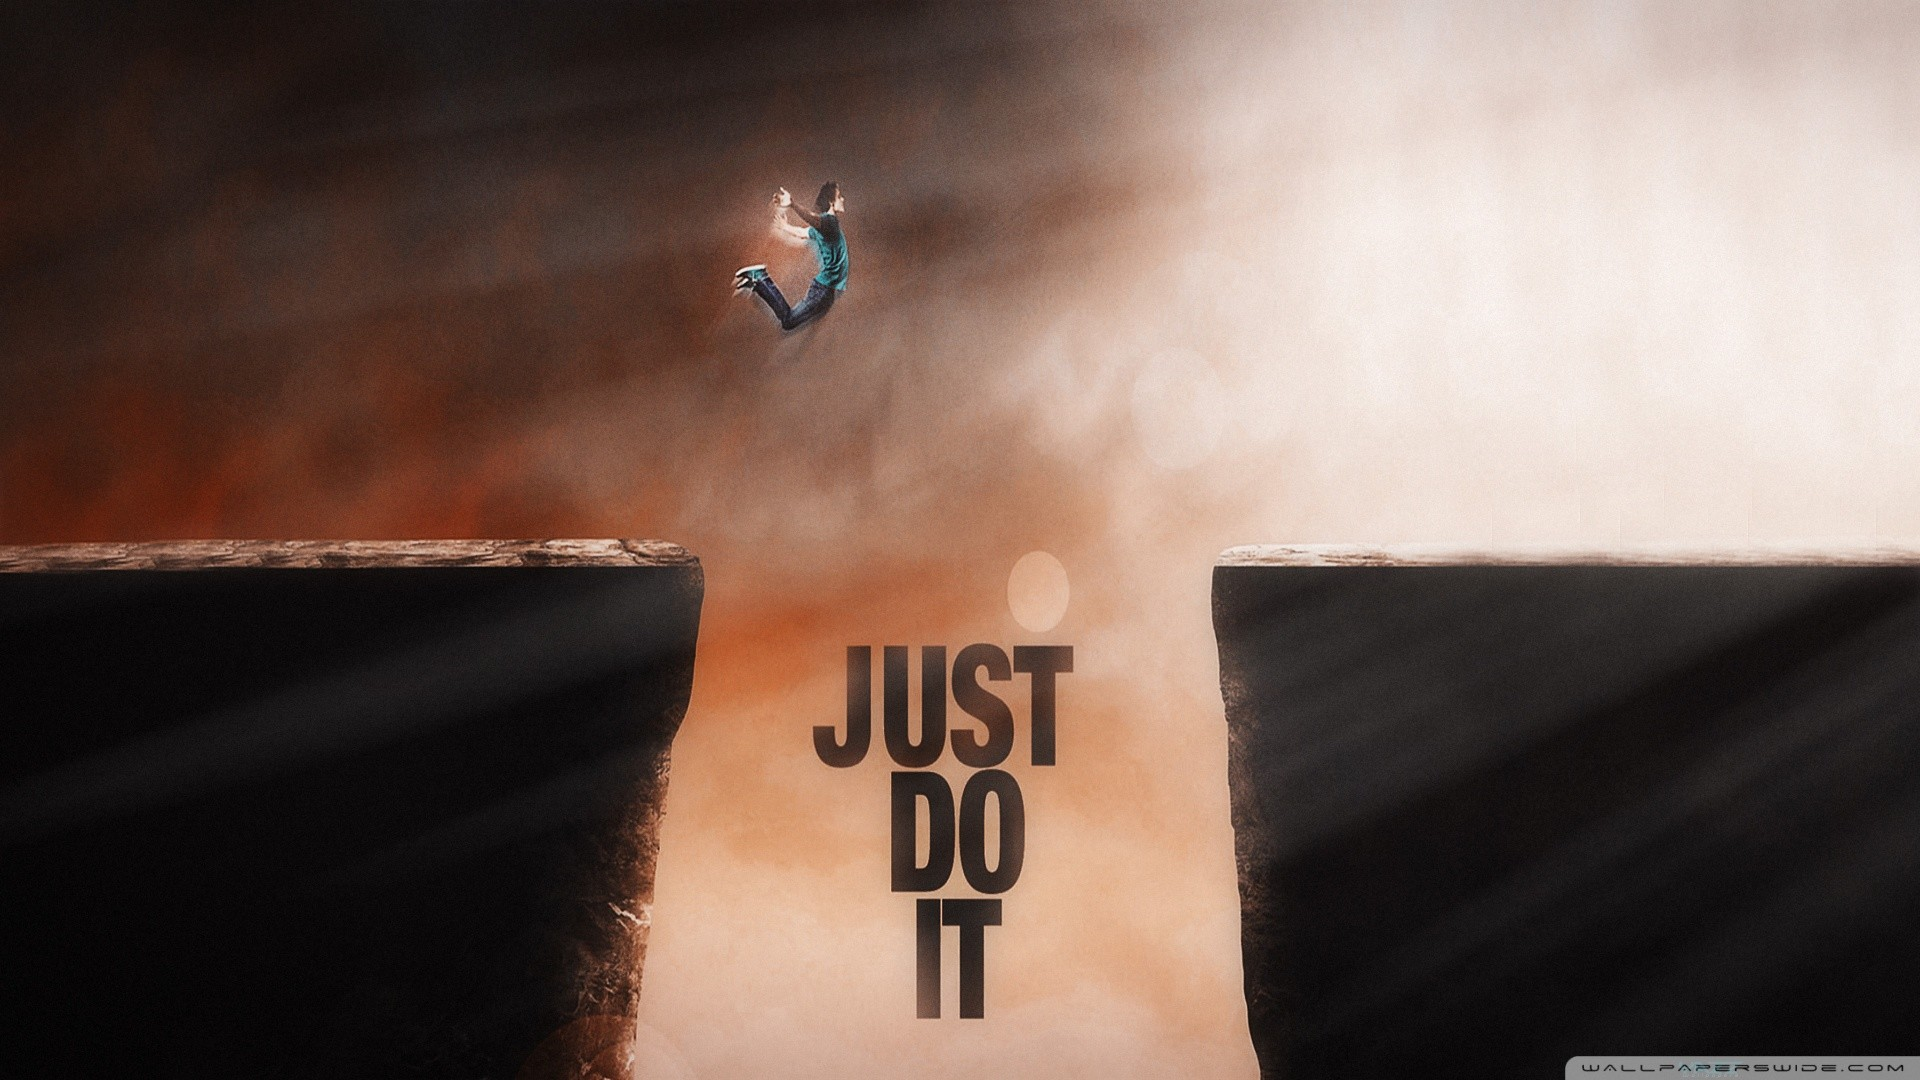 Just do it wallpaper hd 67 images 1920x1080 hd 169 voltagebd Choice Image